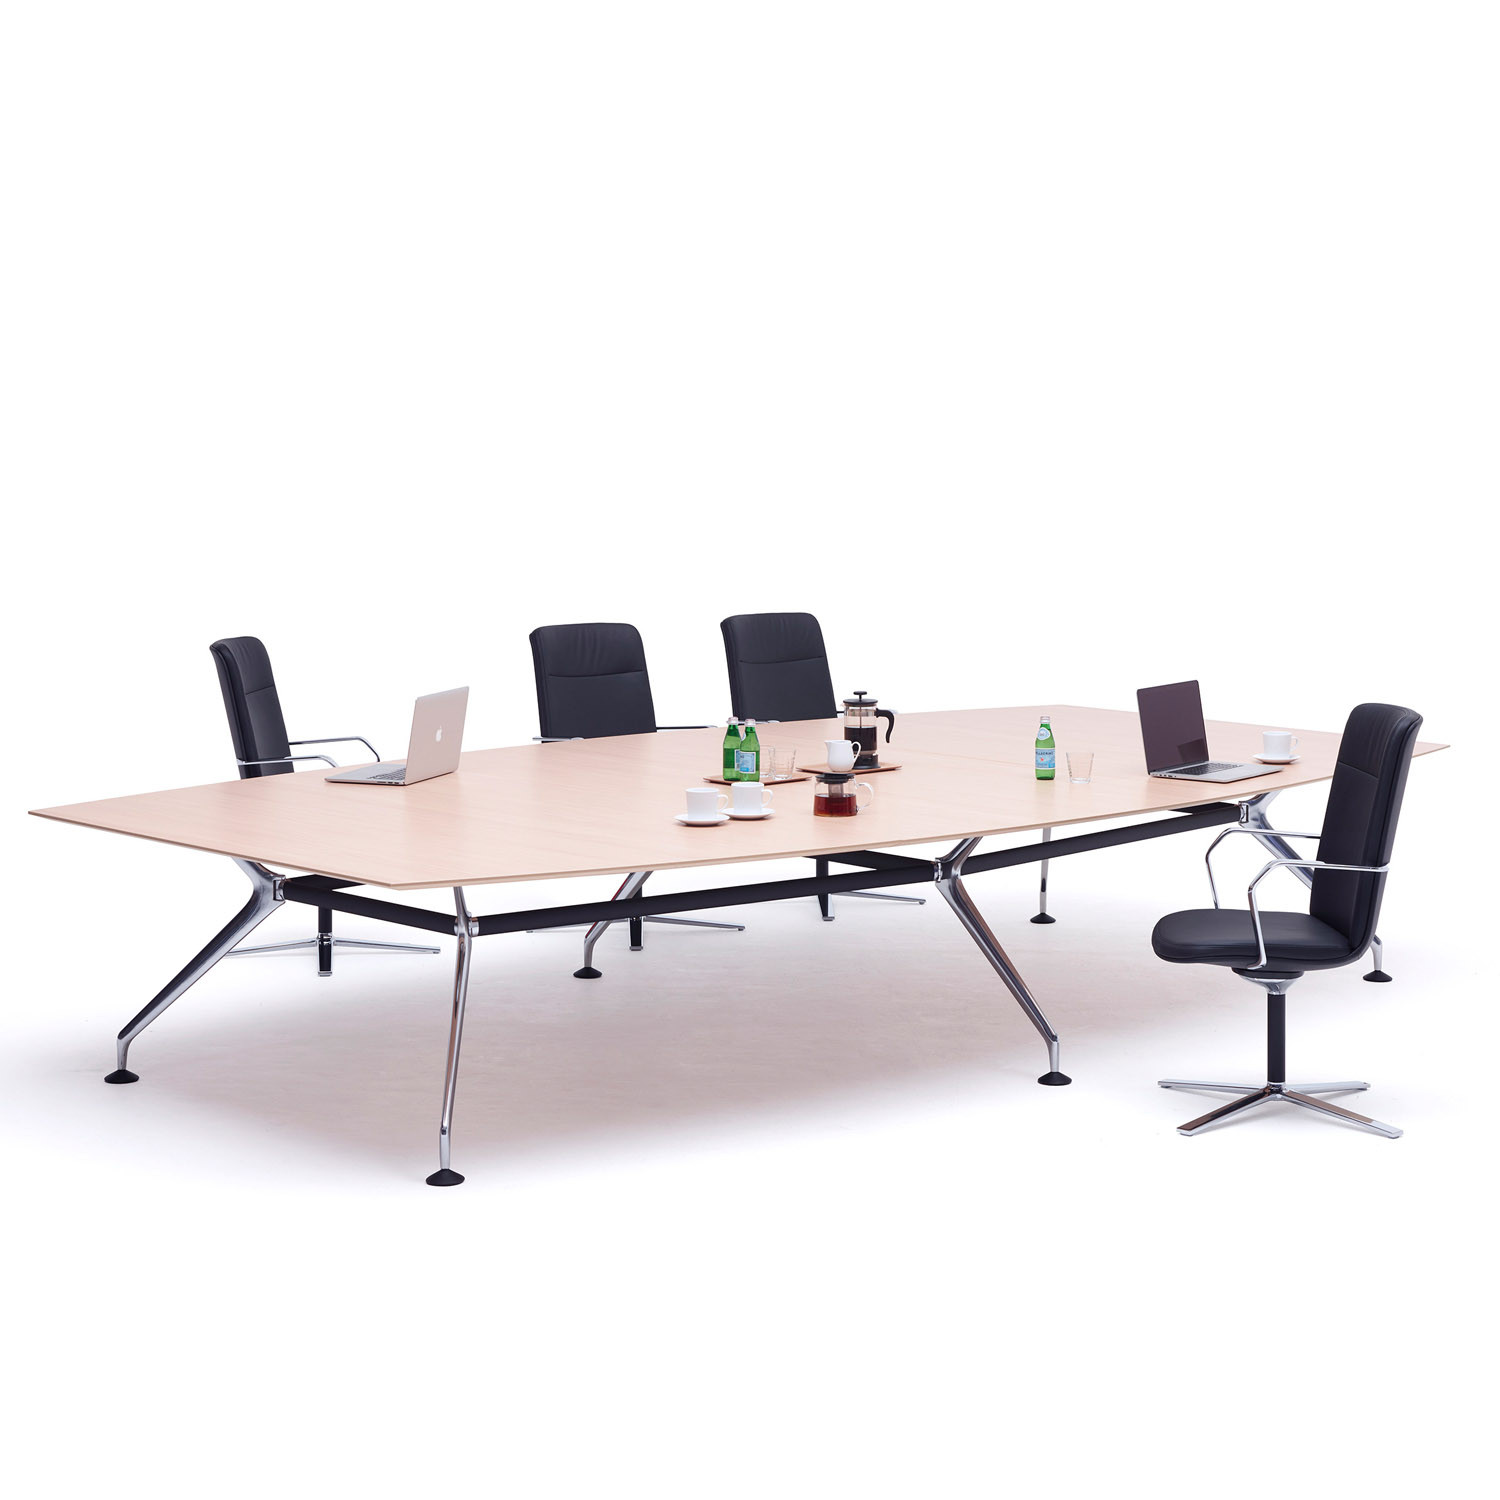 Lano Tables with cable management